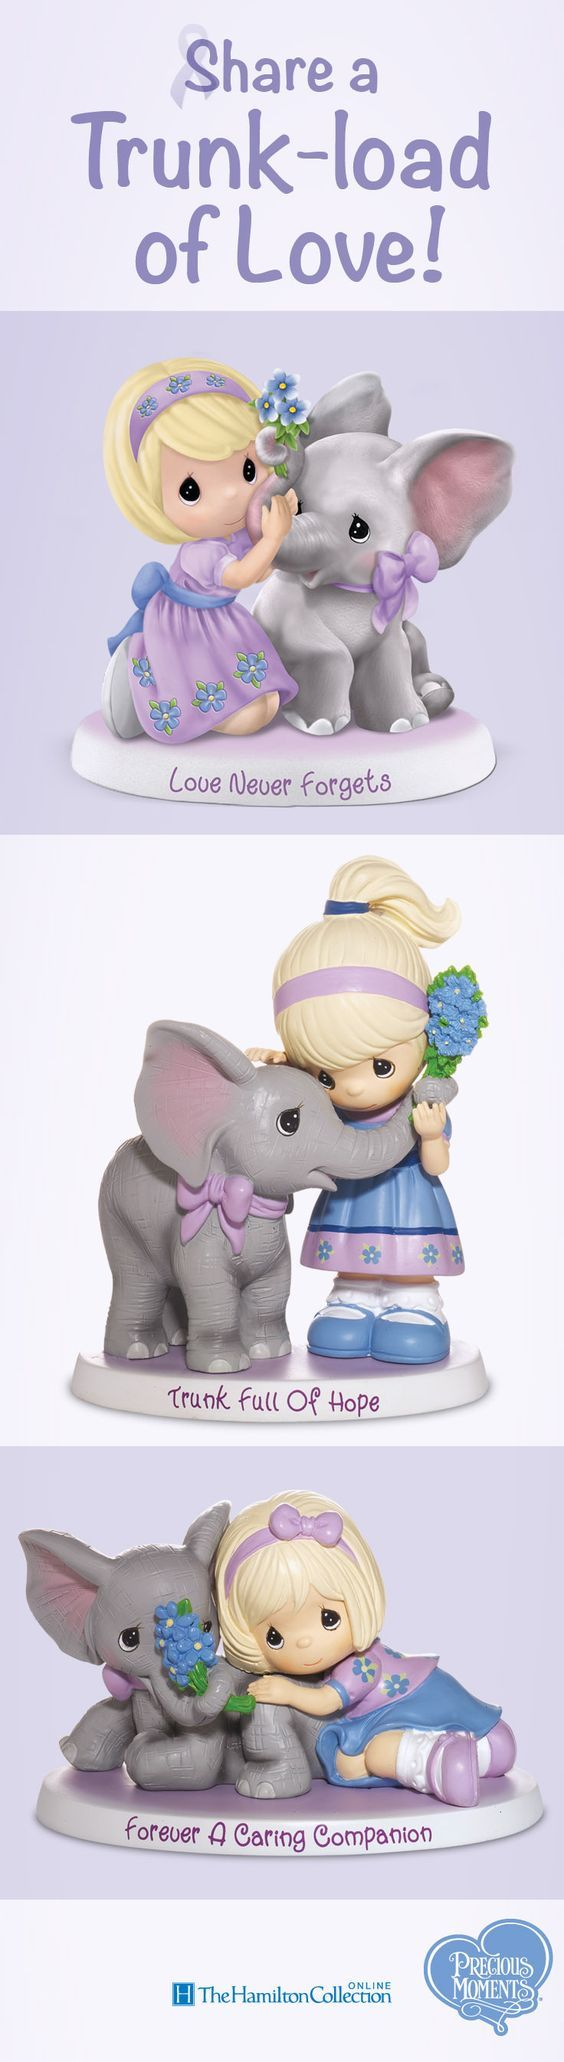 Each one is sweeter than the last! Let this Alzheimer's awareness elephant figurine collection be a heartwarming reminder that love never forgets.